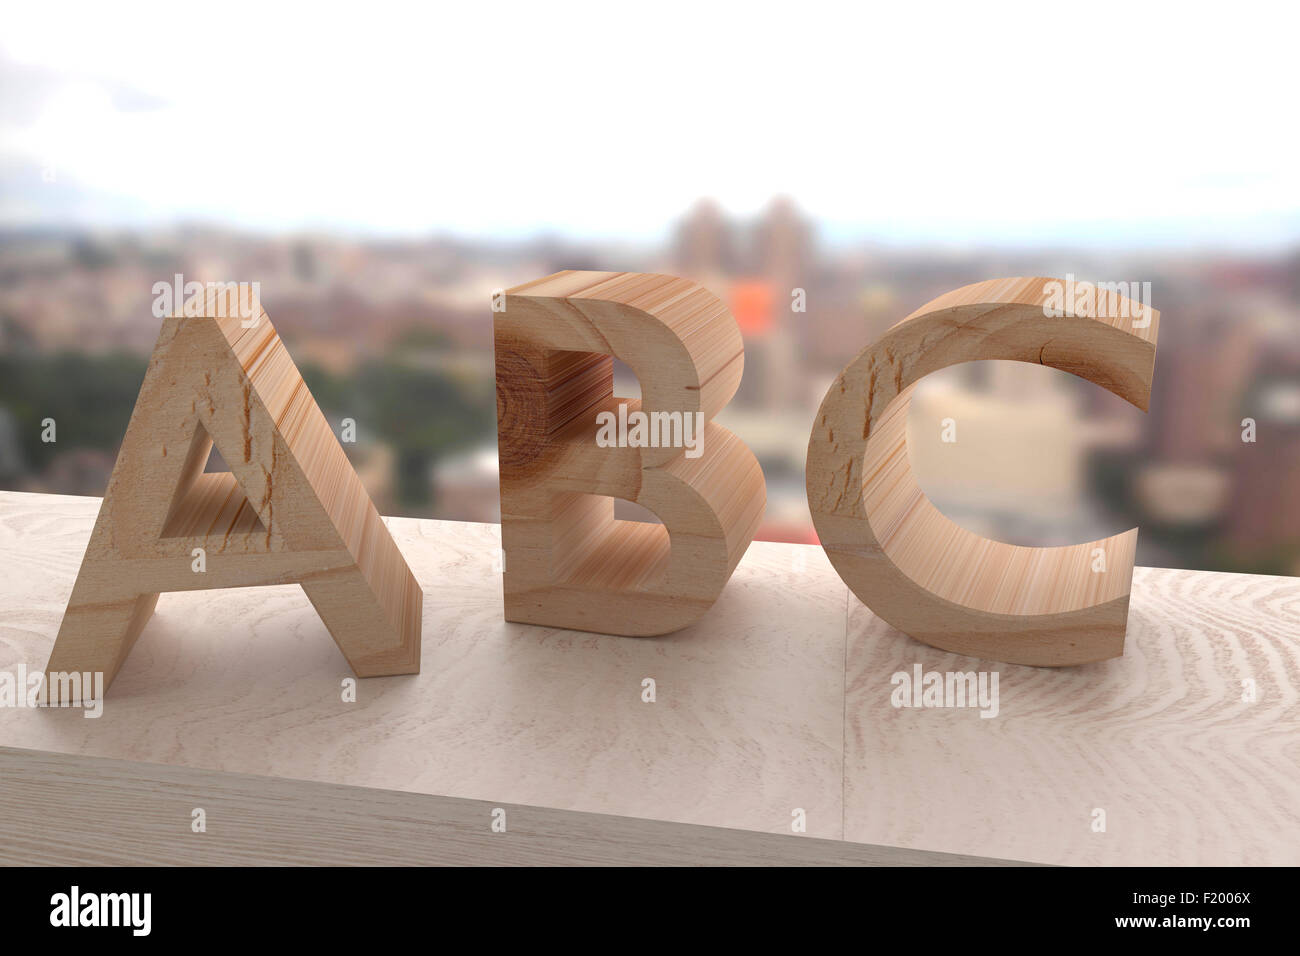 3d rendering of a wooden abc letters - Stock Image